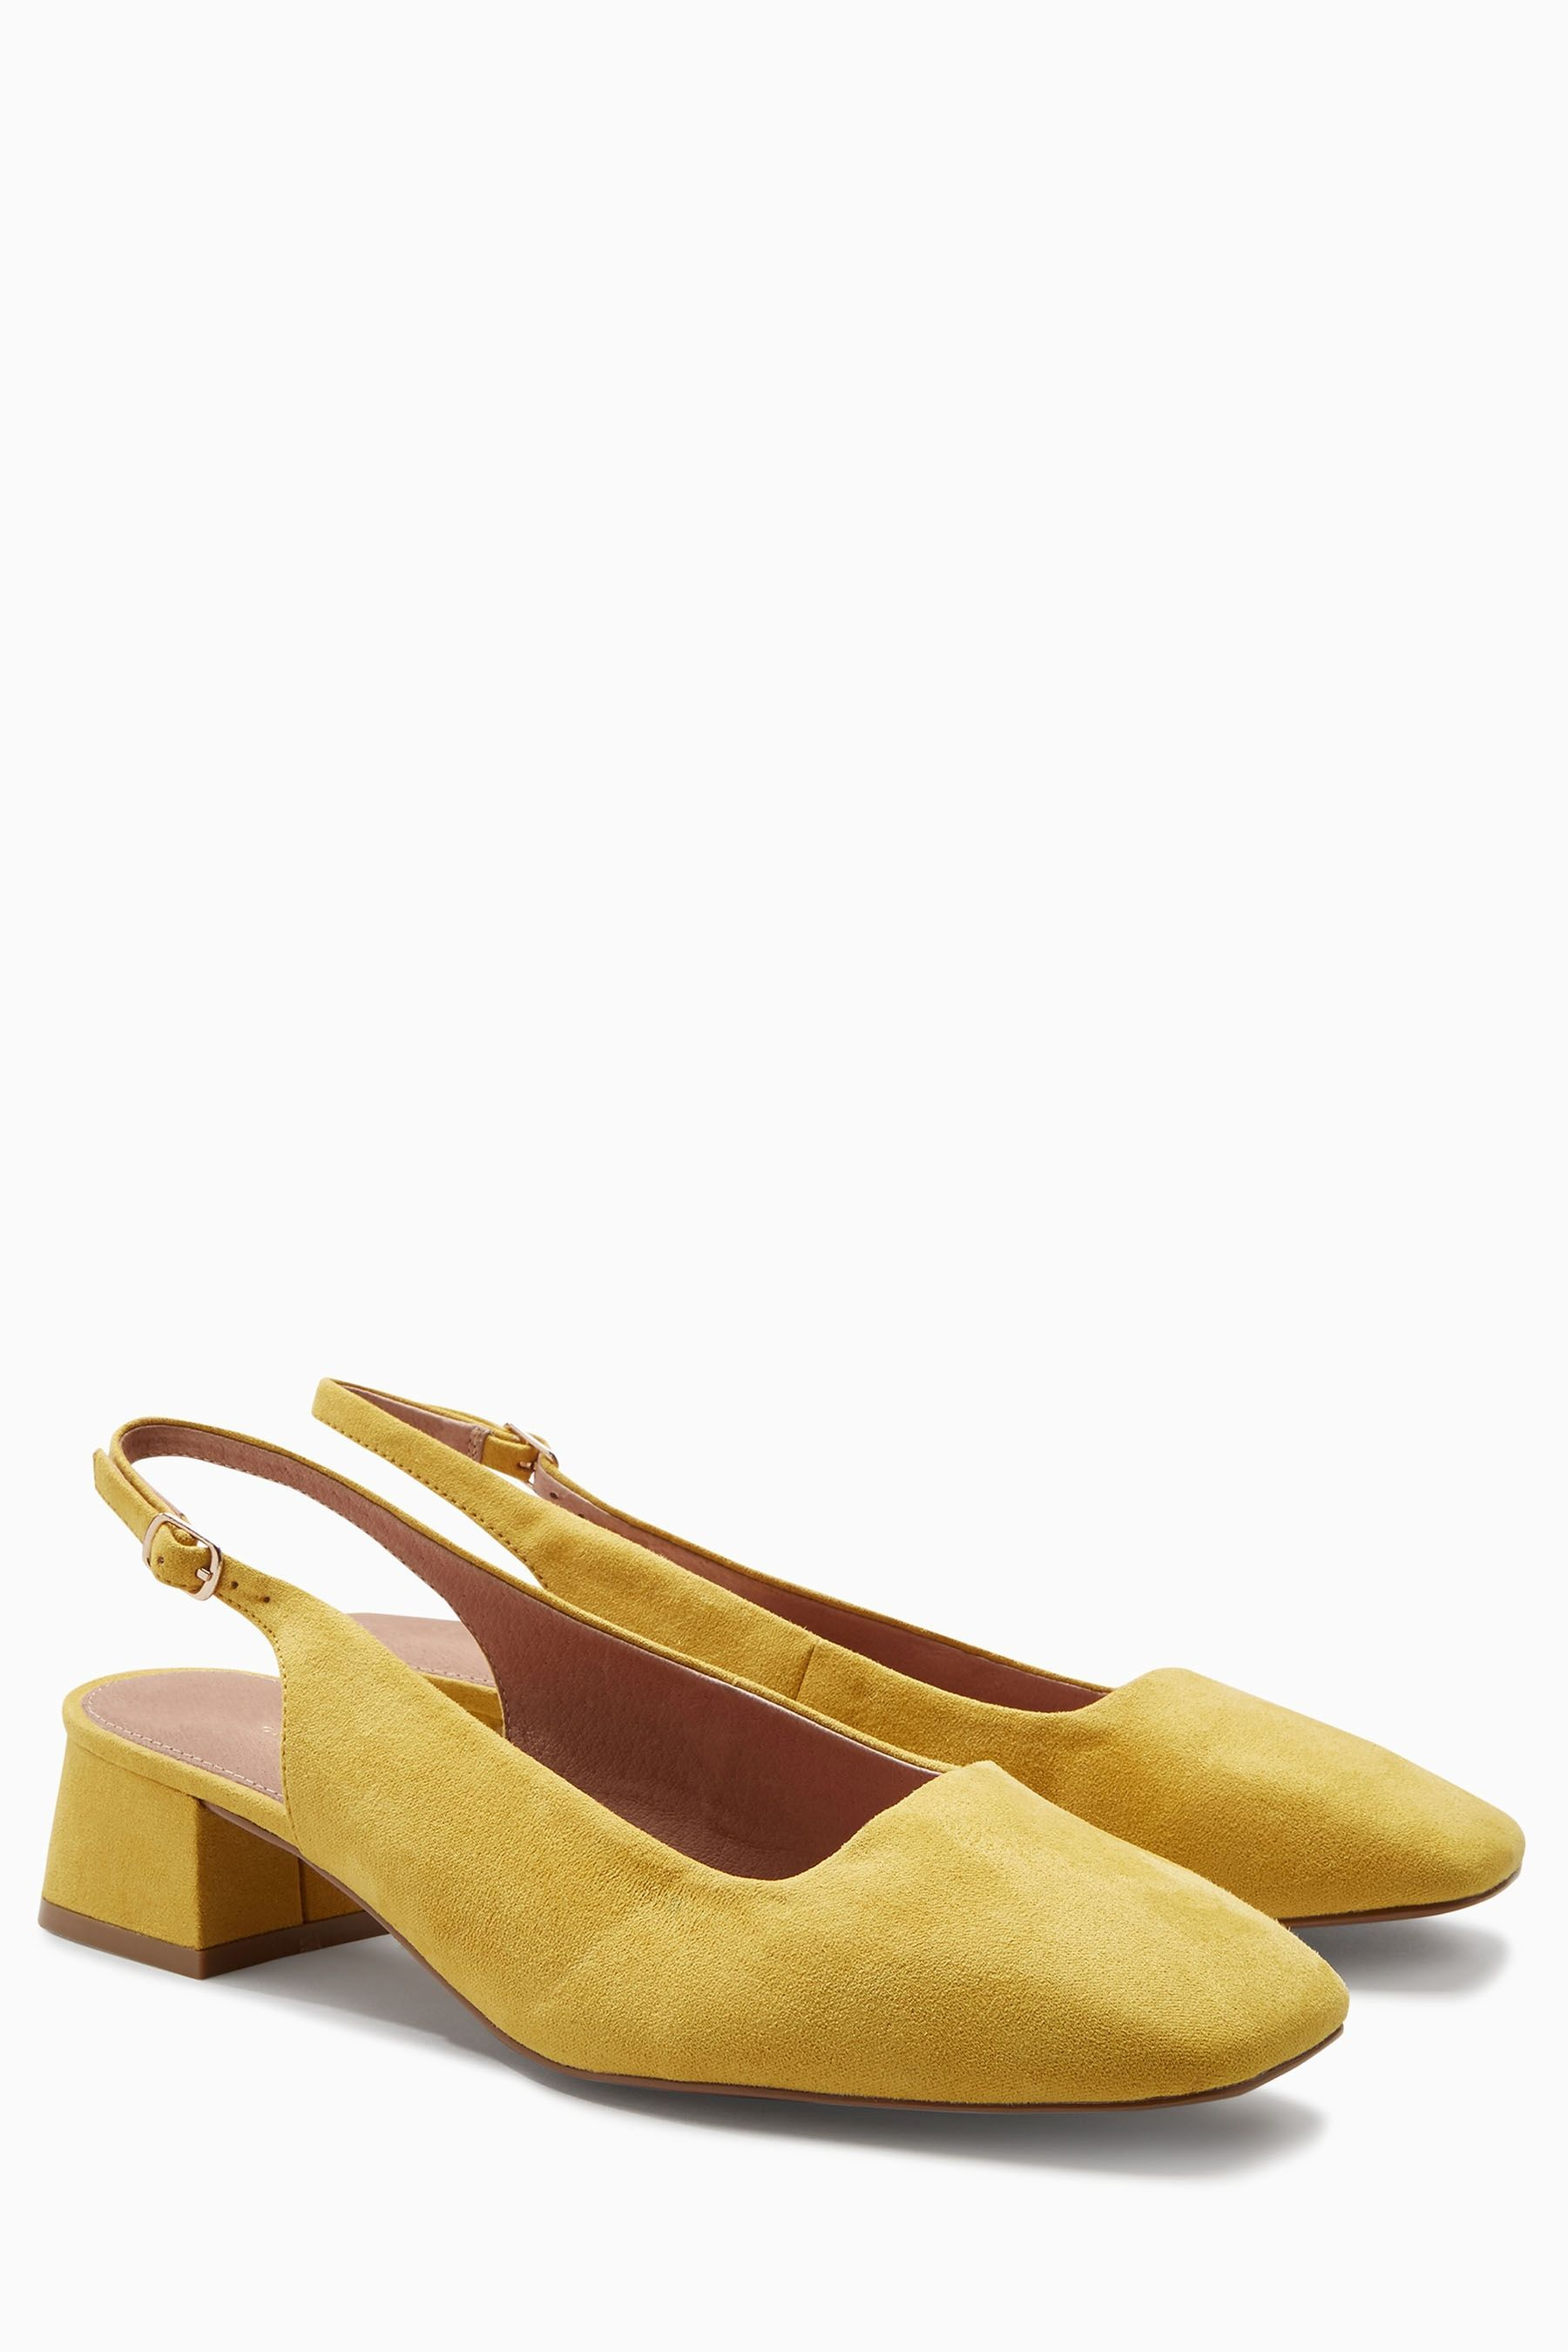 6f1d4b9d6d3 Buy Ochre Square Toe Slingback Court Shoes from the Next UK online shop